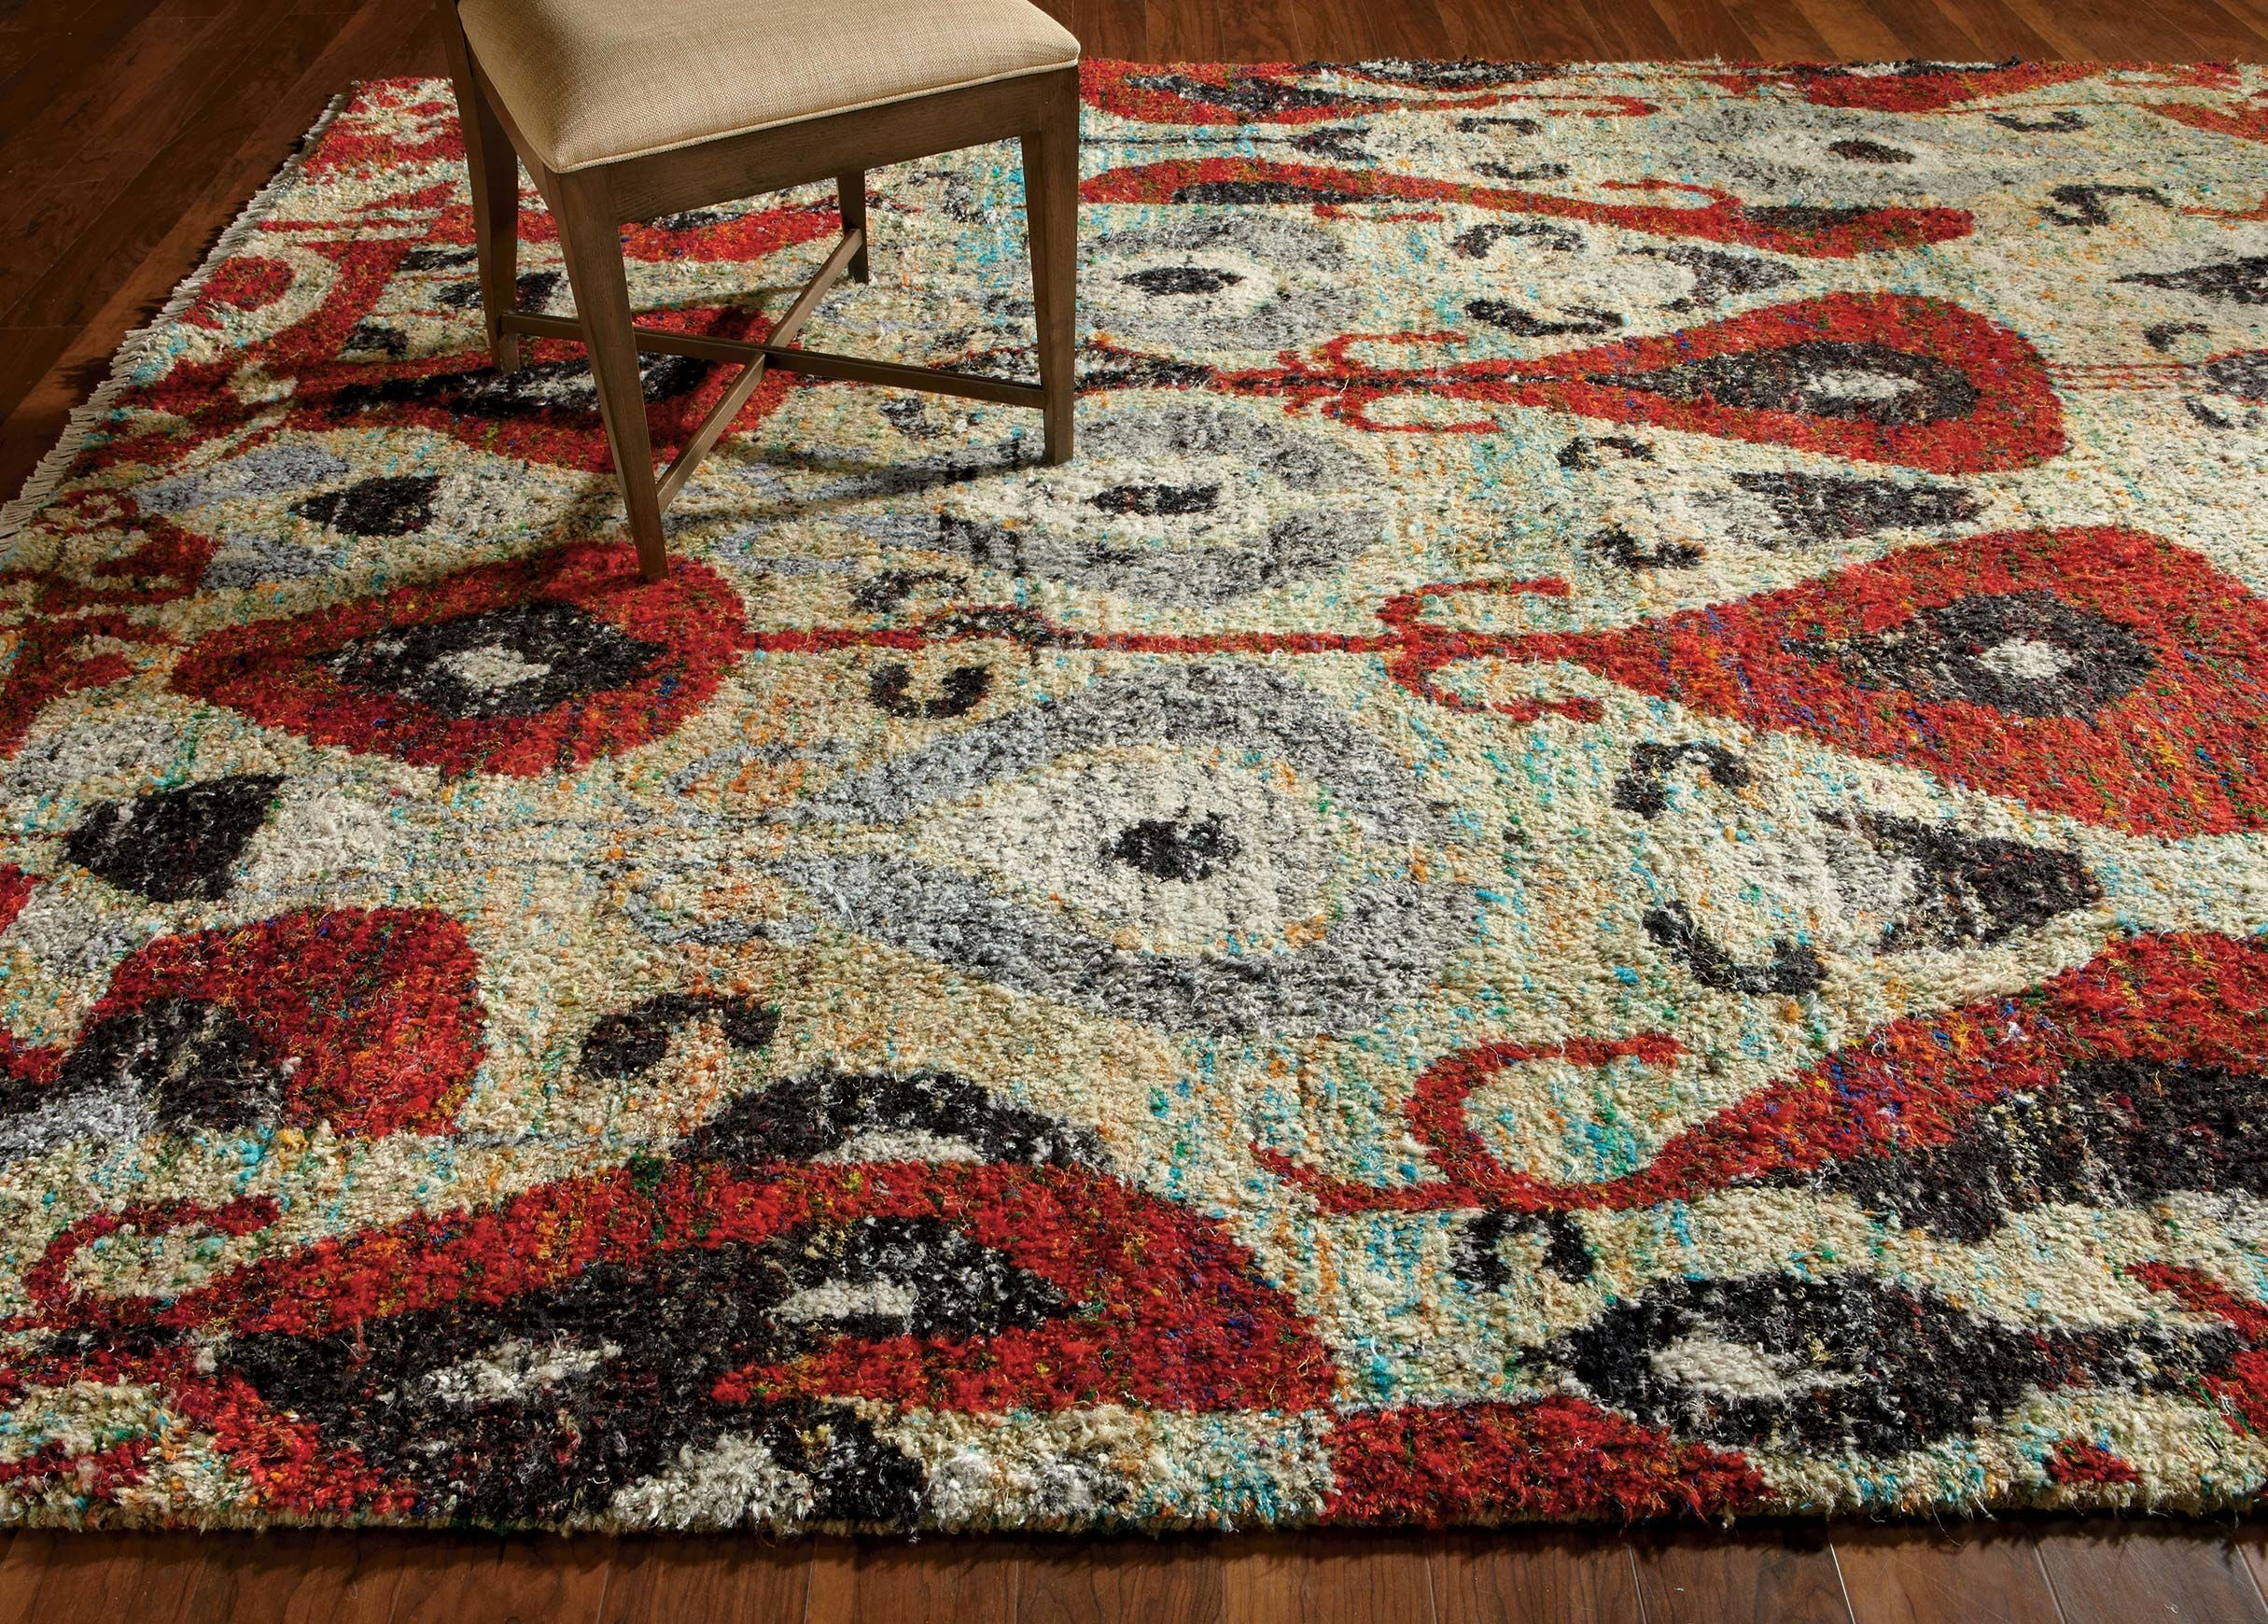 outdoor rug photos pictures of improvement inspirational rugs new graphics lovely allen june x home ethan oriental